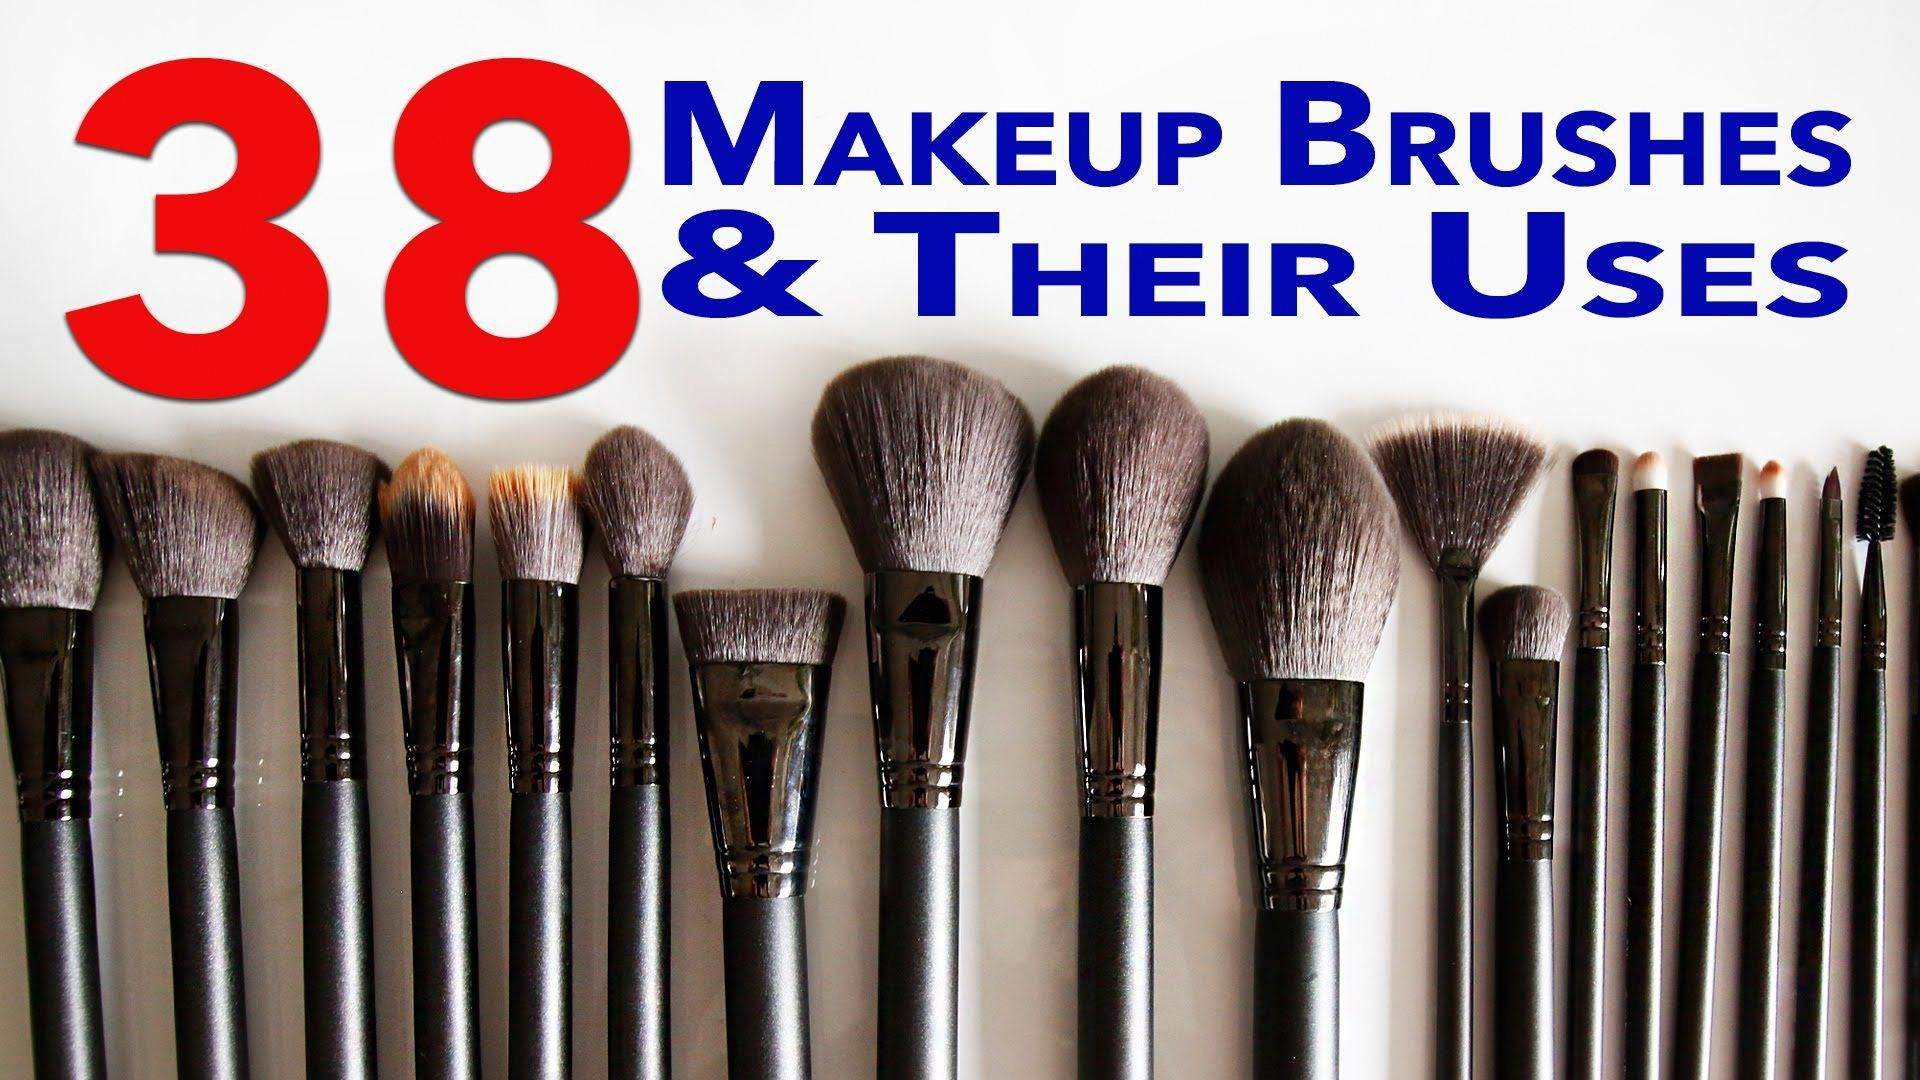 Ultimate Makeup Brushes Guide! 38 Makeup Brushes and Their